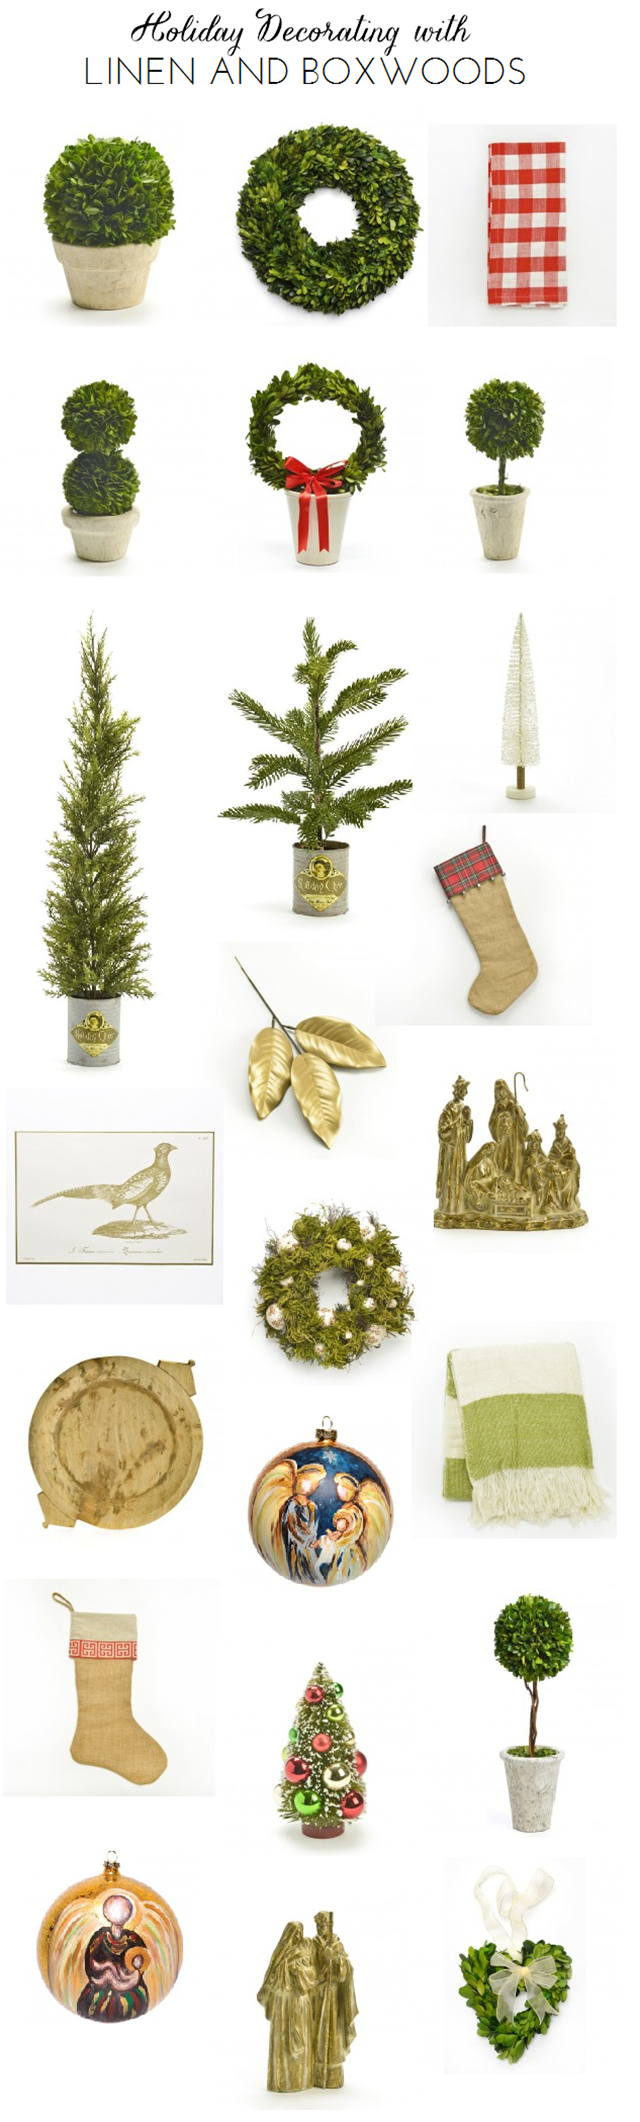 Linen and Boxwoods holiday